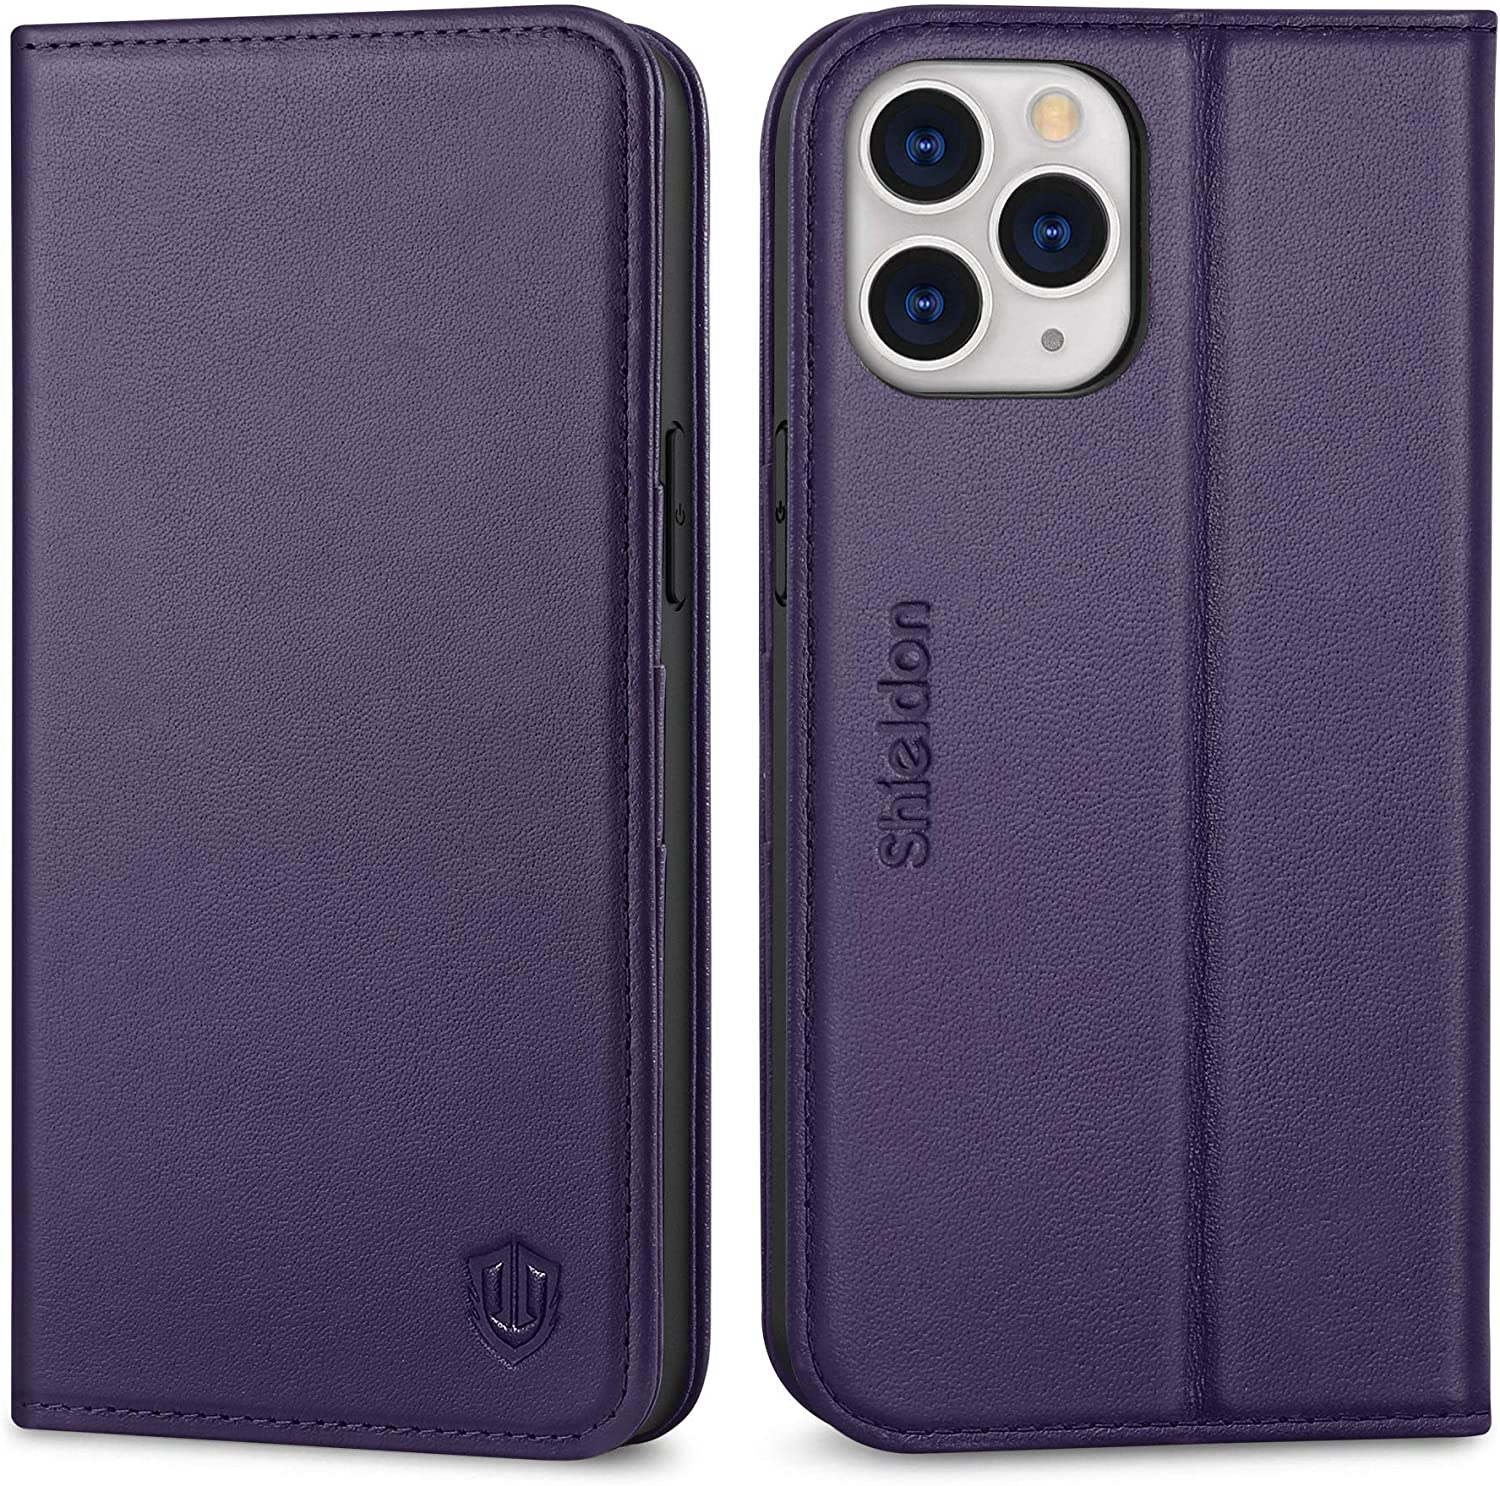 SHIELDON Case for iPhone 12 Pro Max, Genuine Leather Wallet Flip Cover Kickstand RFID Blocking Card Slots Magnetic Closure Shockproof Case Compatible with iPhone 12 Pro Max 5G (6.7 Inch) - Dark Purple